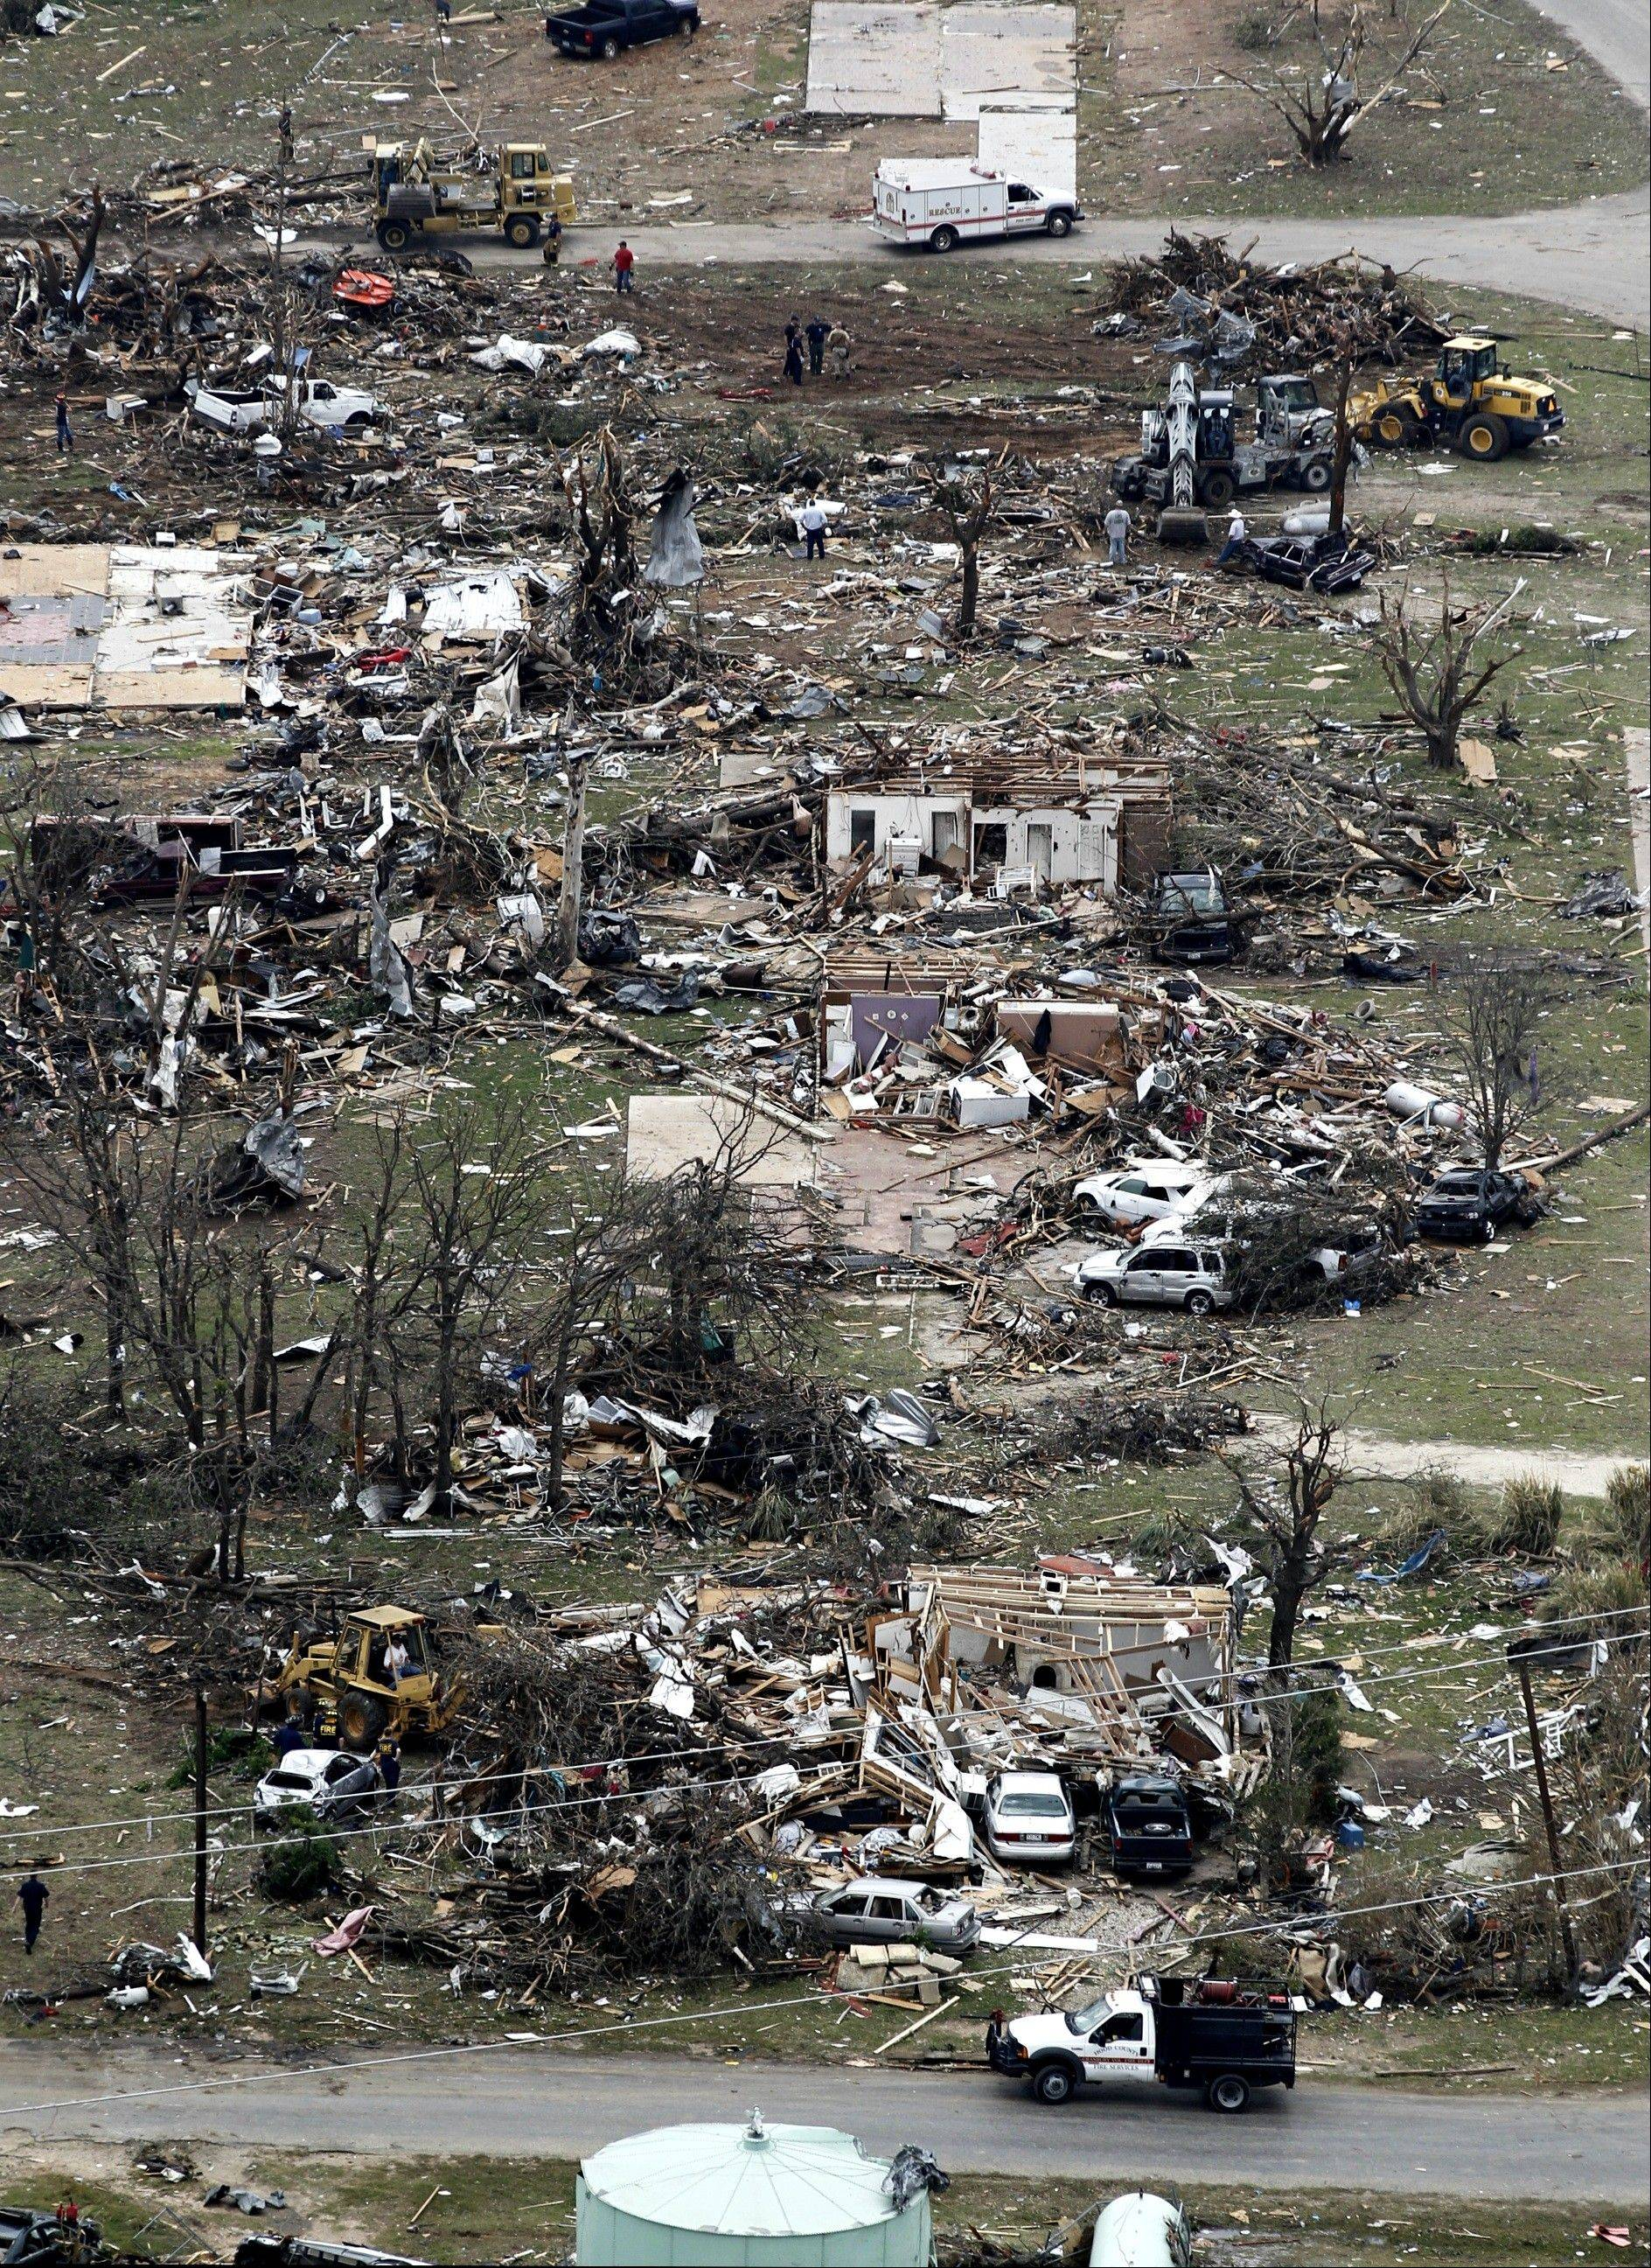 Heavily damaged homes are seen in Granbury, Texas, on Thursday, May 16, 2013. Ten tornadoes touched down in several small communities in North Texas overnight, leaving at least six people dead, dozens injured and hundreds homeless.